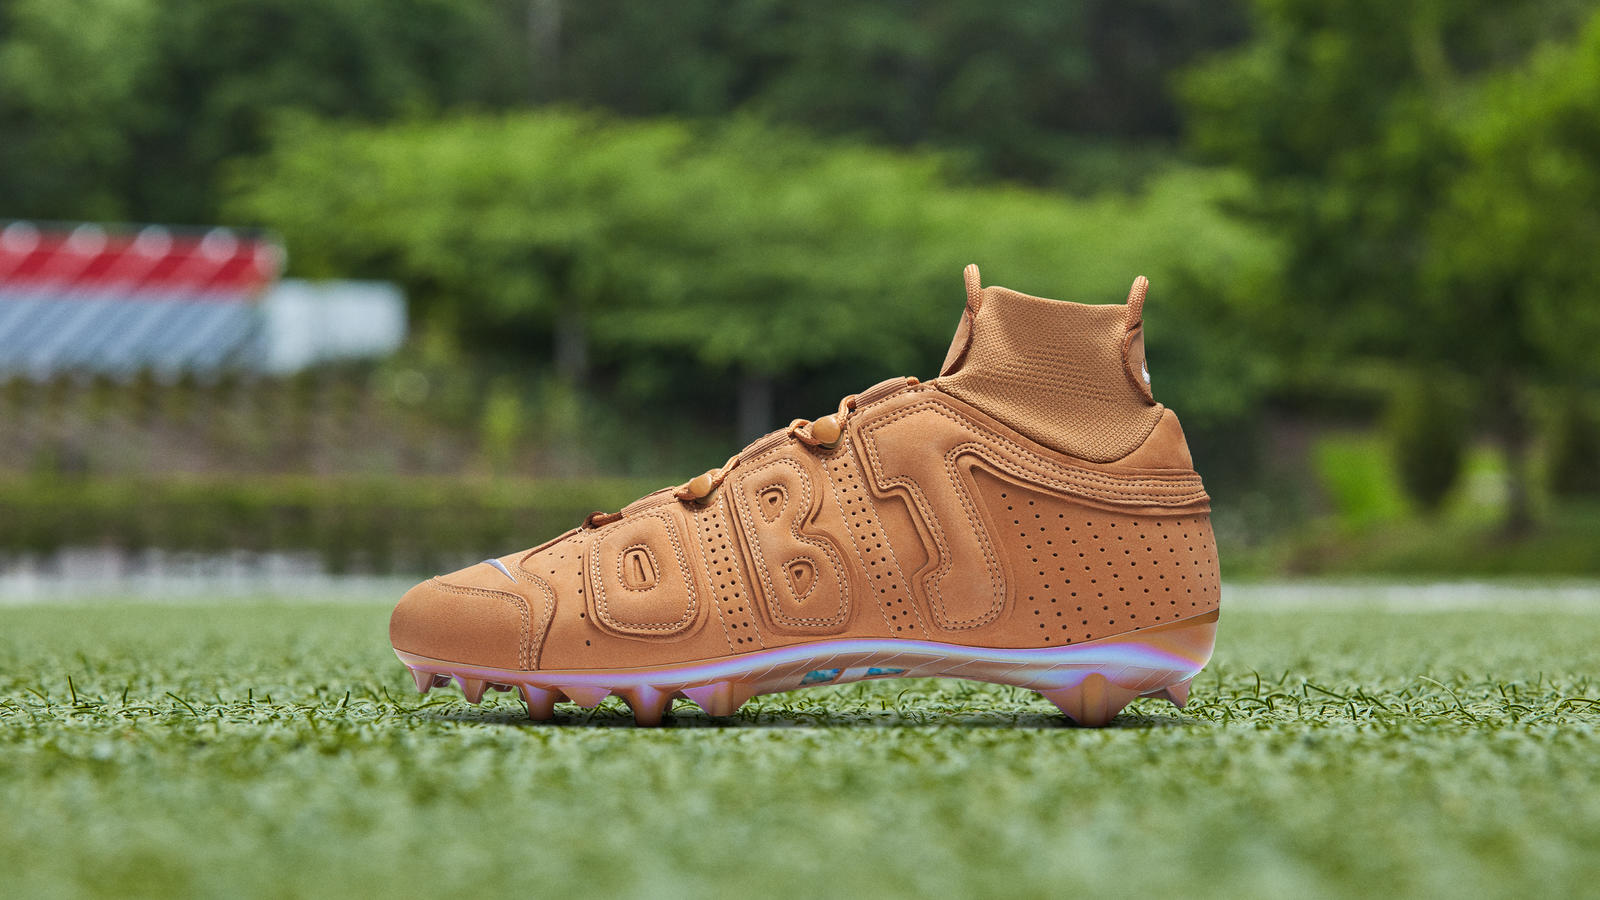 OBJ Week 6 Pregame Cleat AF1 Wheat Colorway 0